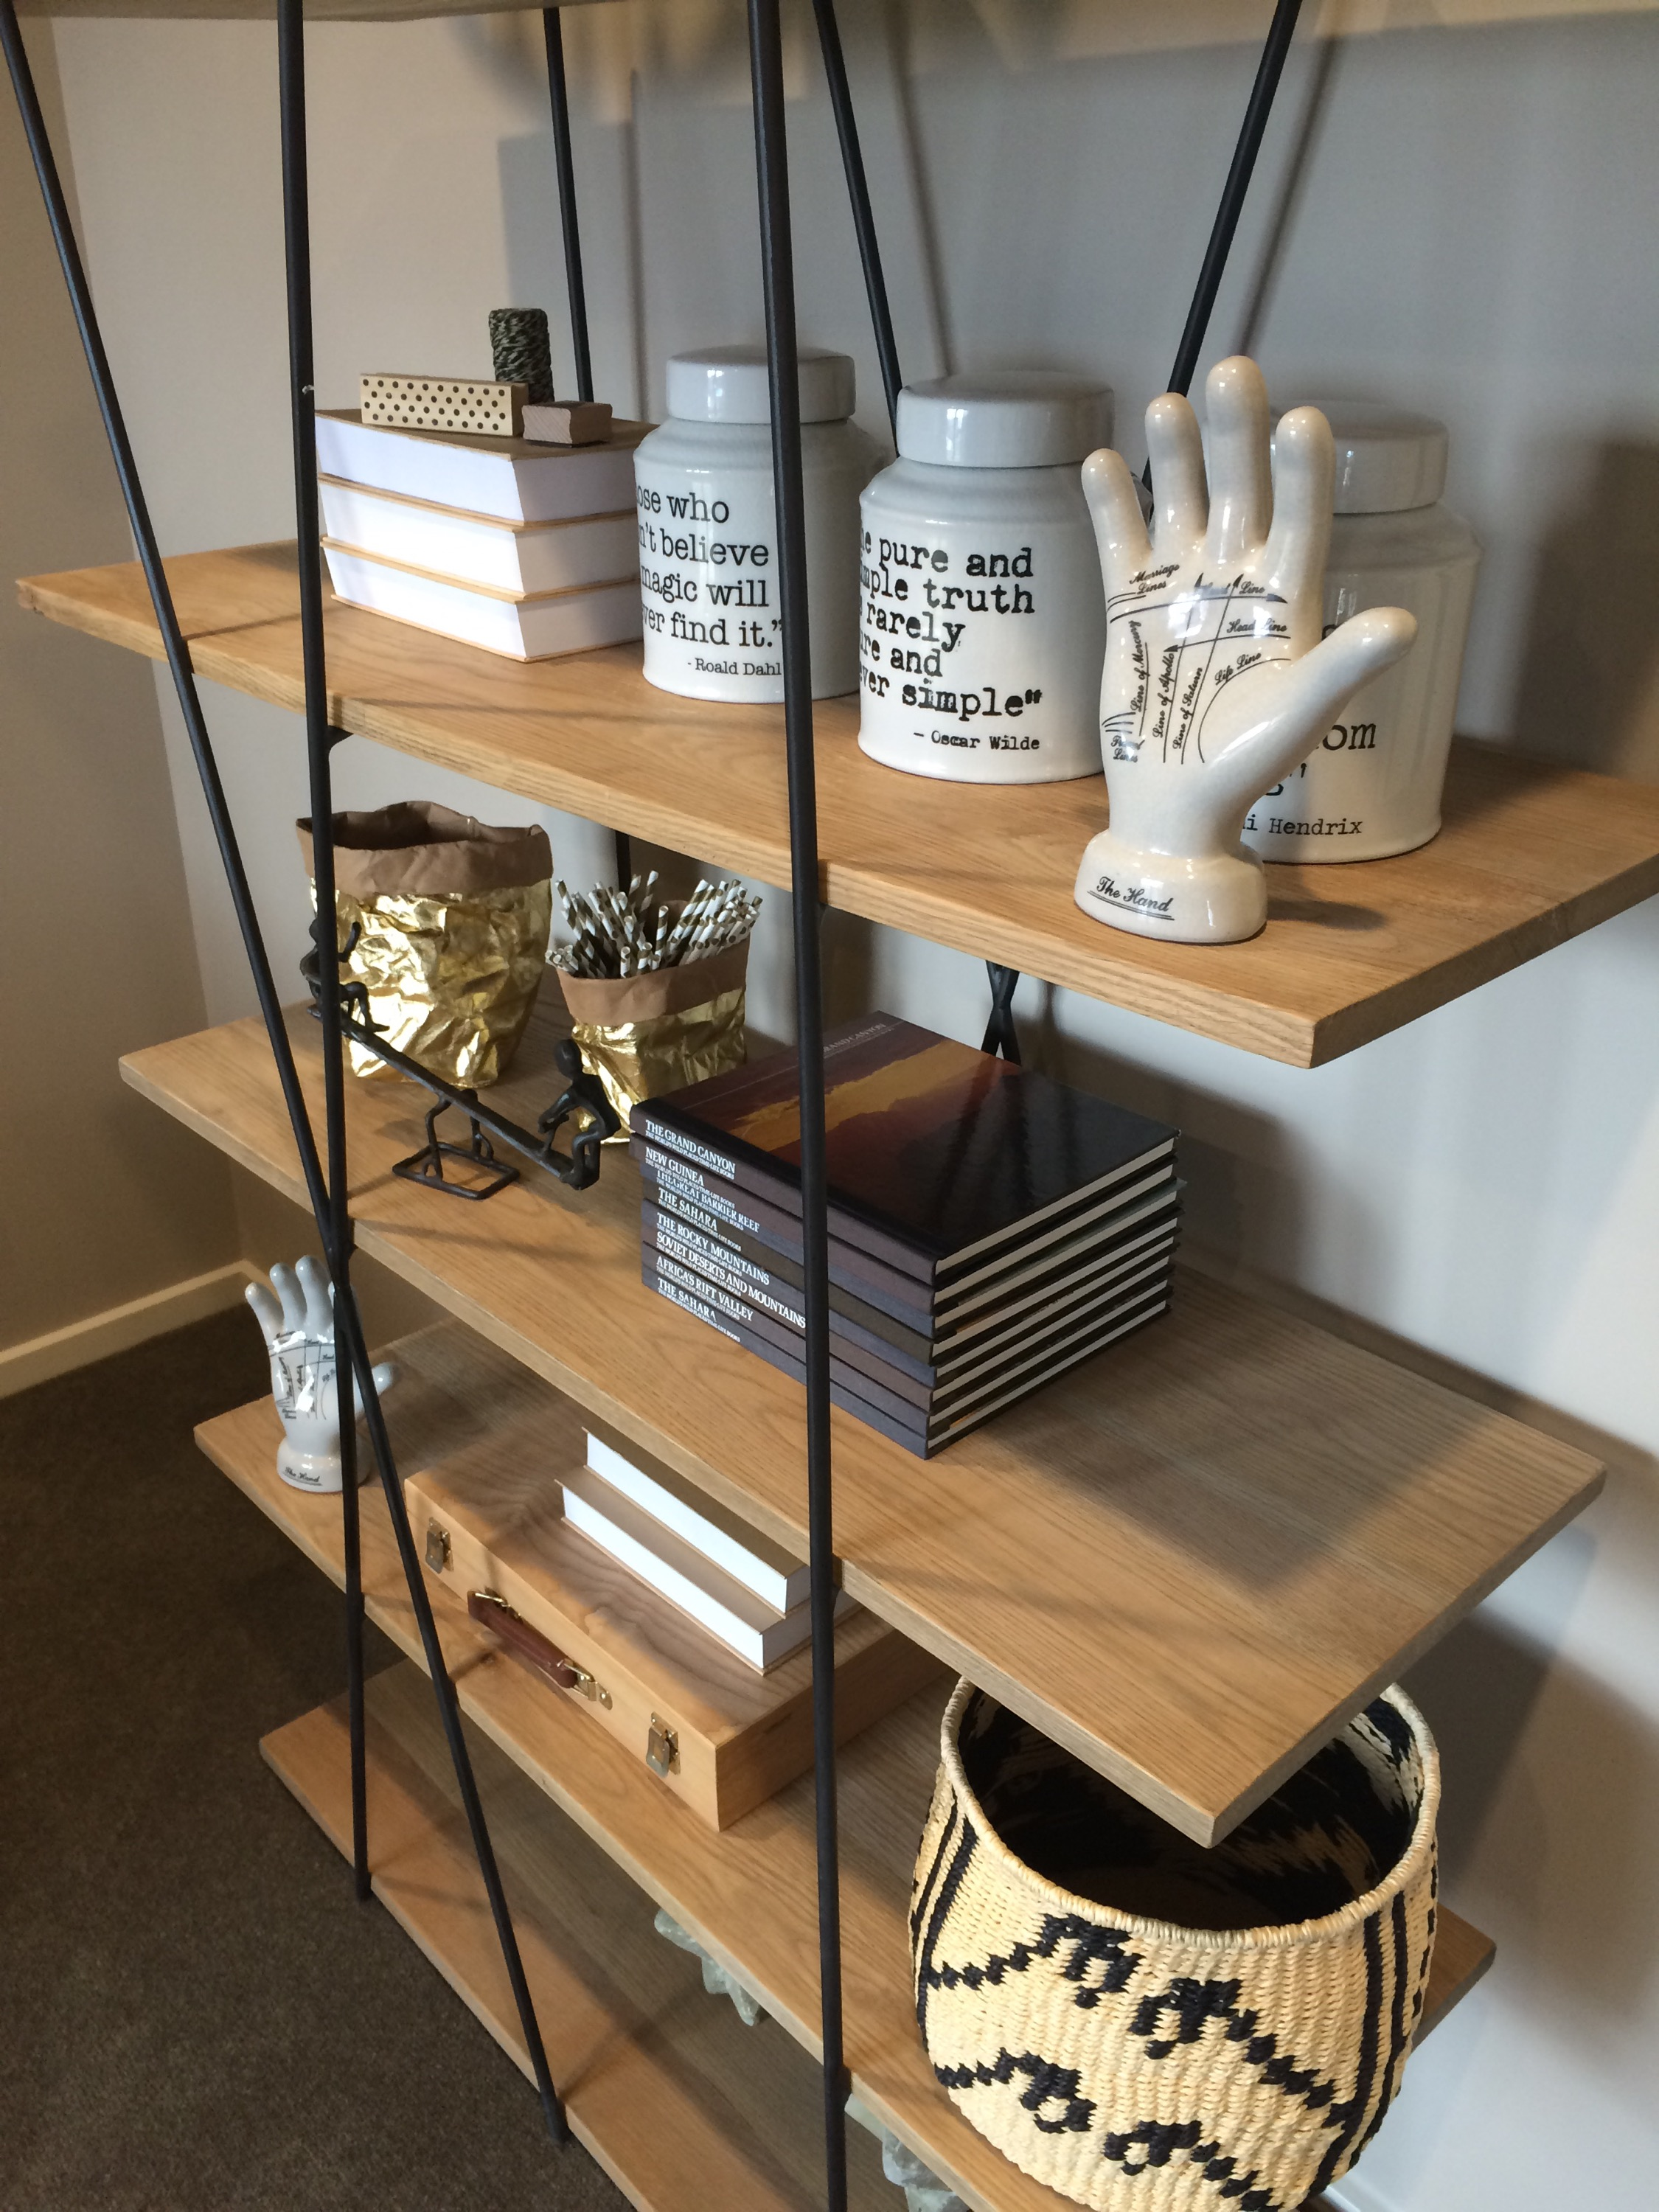 Bookshelf Styling 101- Make Your Junk Look Like Treasure!